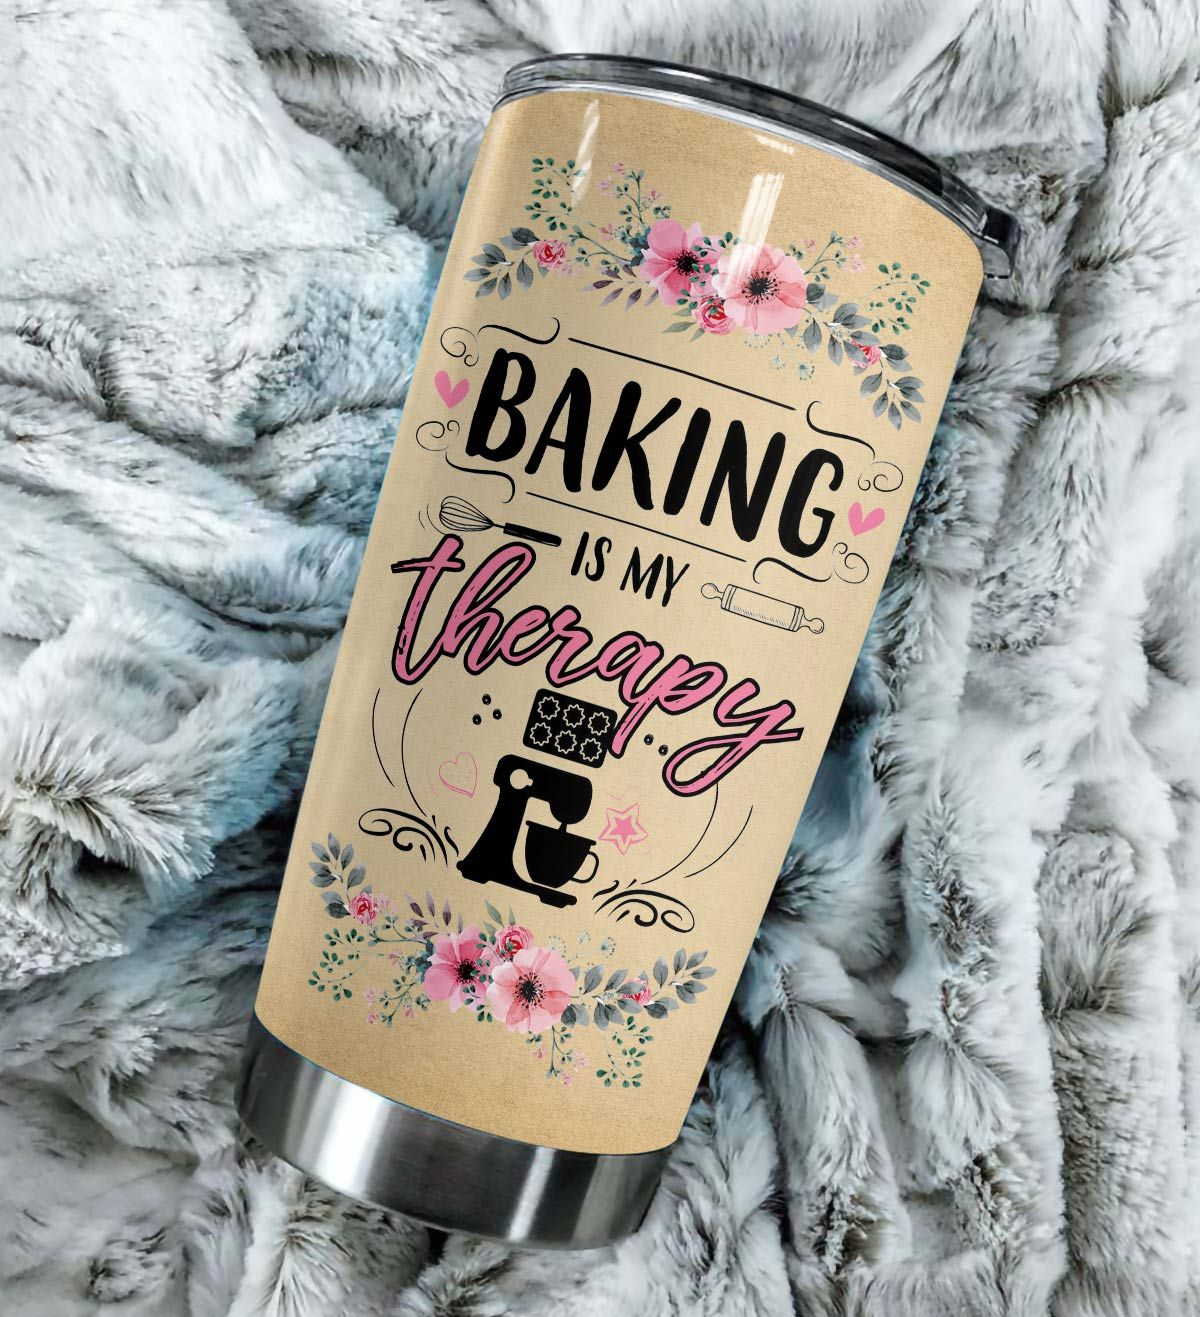 Baking is my therapy baking knowledge full over print tumbler 3